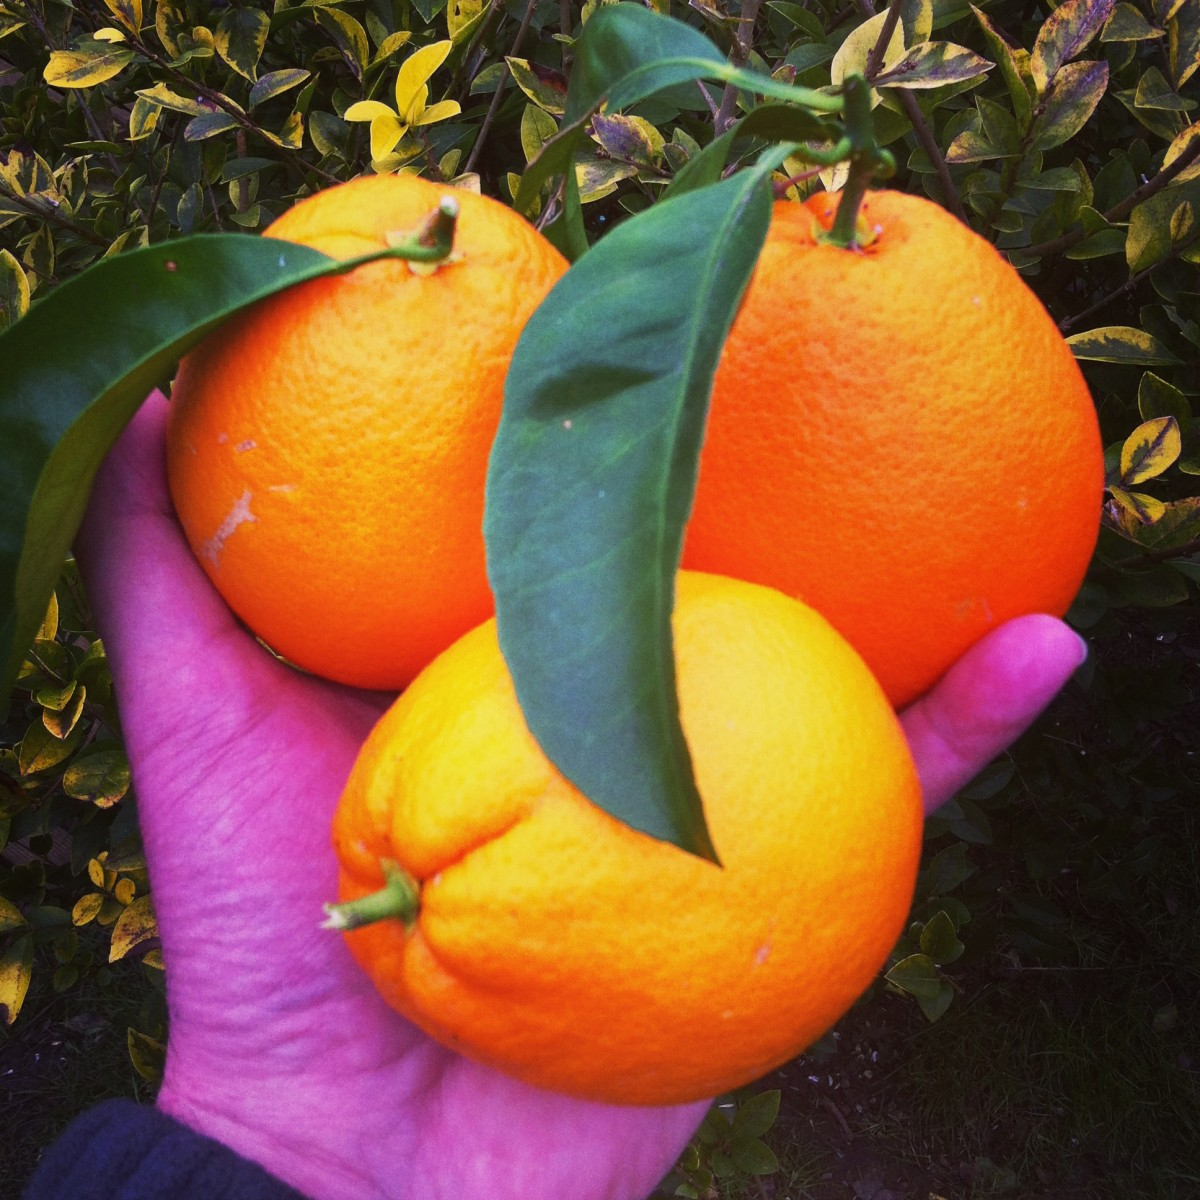 Citrus : Orange navel - Hortus Focus